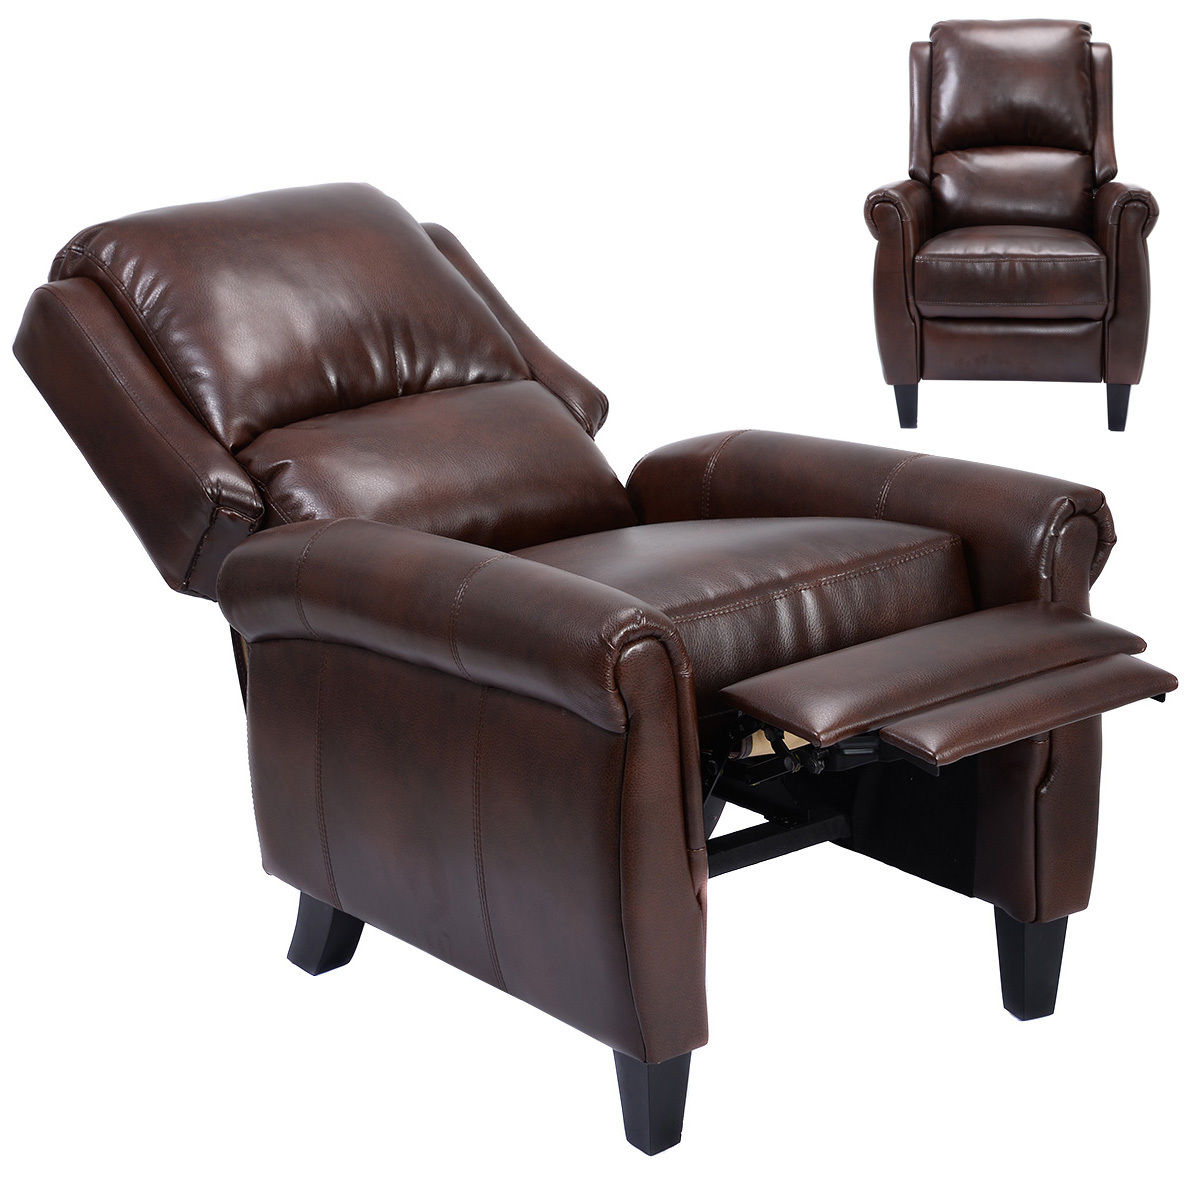 brown accent chairs chair hair design recliner with leg rest arm recliners sleeper furniture